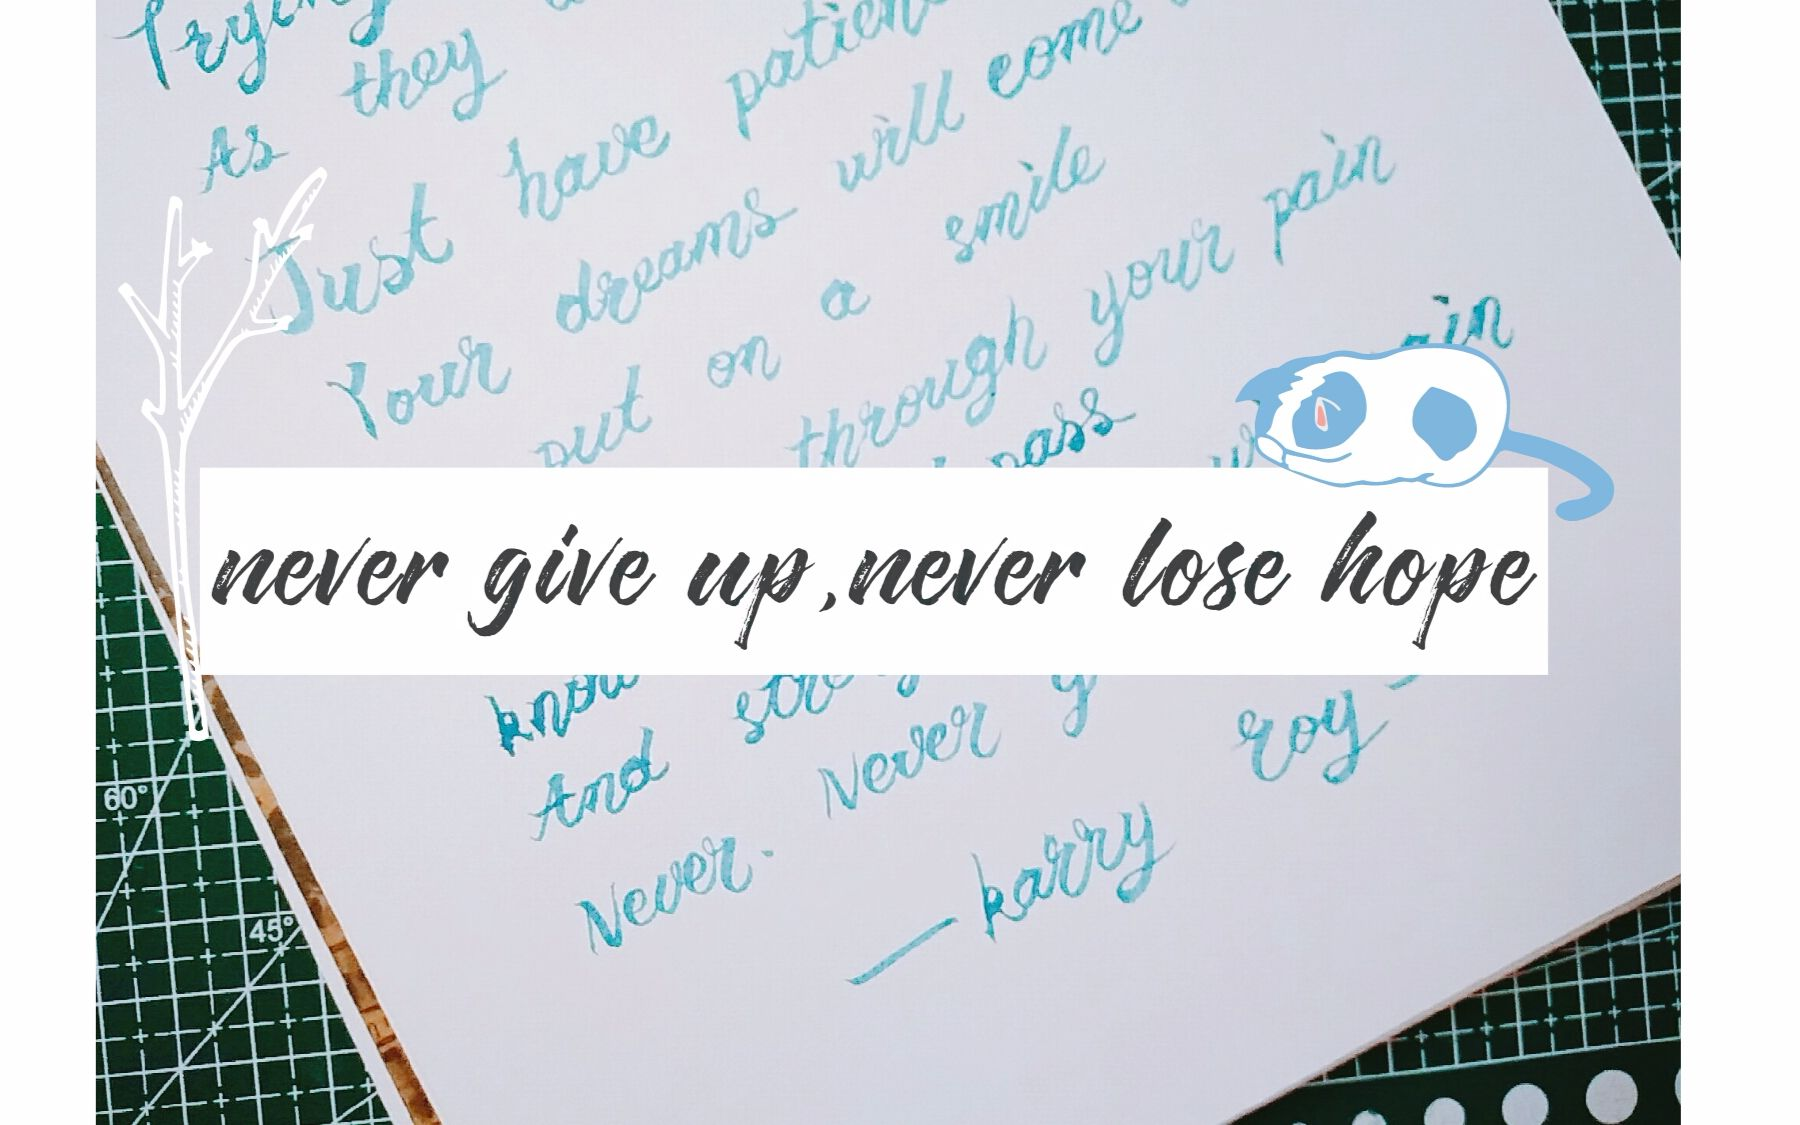 【brushlettering】一起来练字吧~never give up,never lose hope